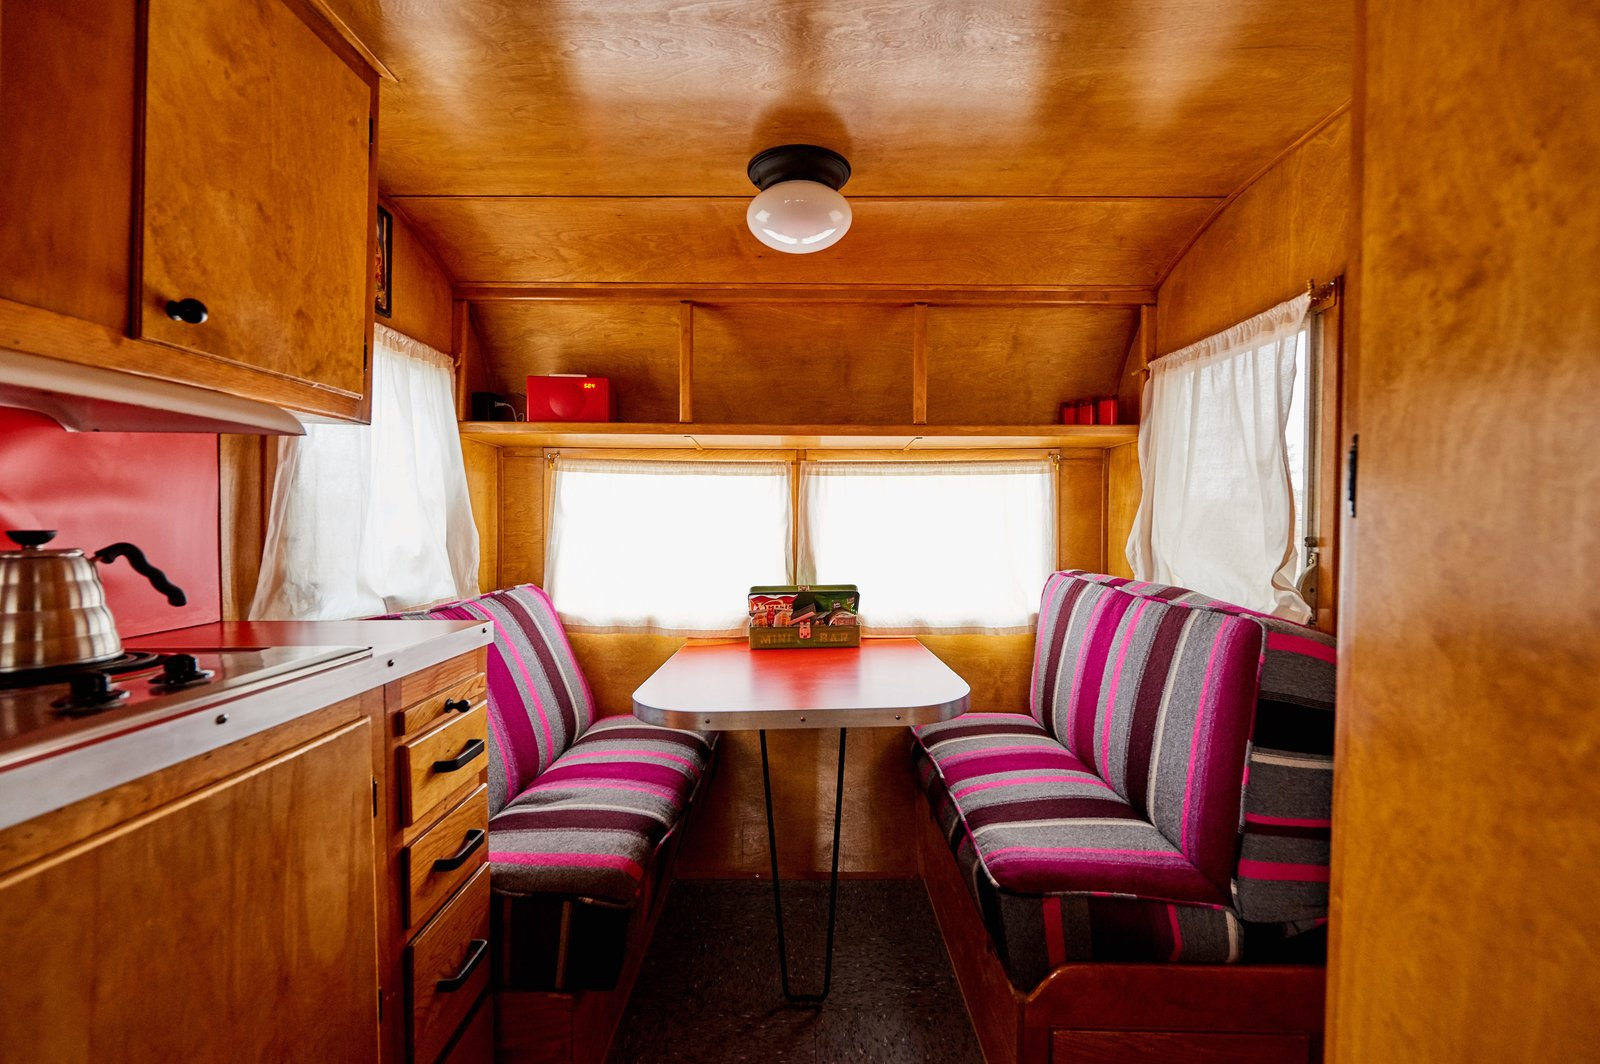 Dining Room, Bench, Storage, Table, and Ceiling Lighting The bright, custom upholstery in this banquette mixes beautifully with the otherwise neutral color scheme.    Photo 7 of 12 in Let Your Creativity Soar at This Eclectic Hotel With Tents, Tepees, Yurts, and Trailers